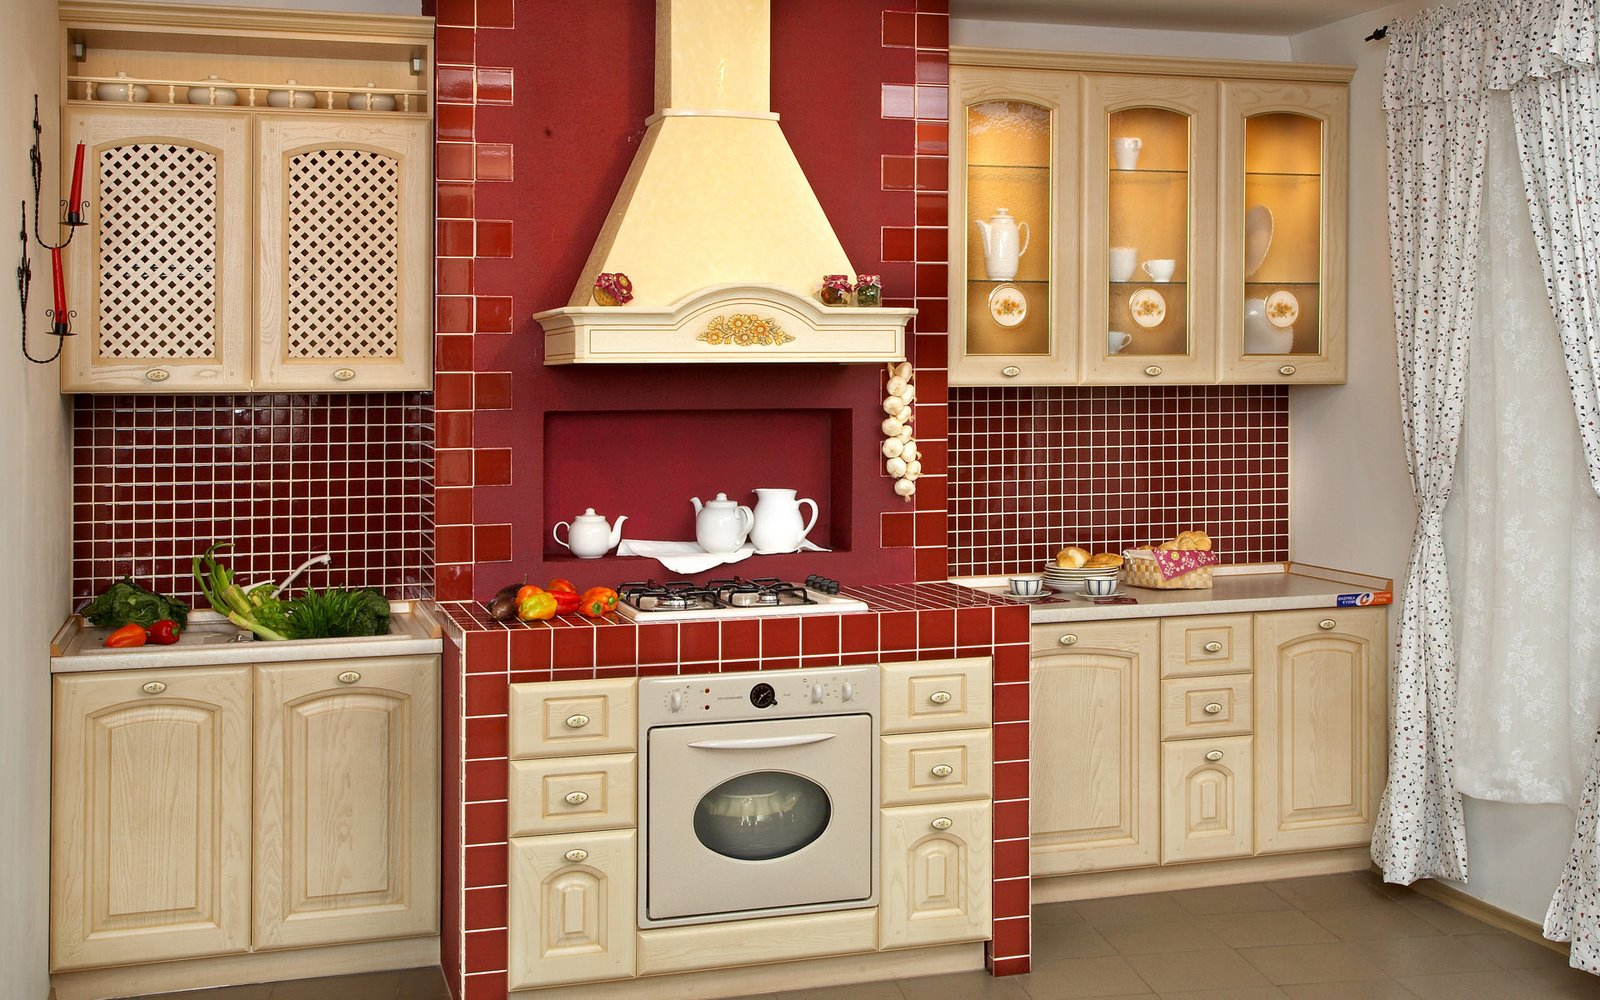 Modern kitchen designs in red interior decorating home for Kitchen cabinets designs